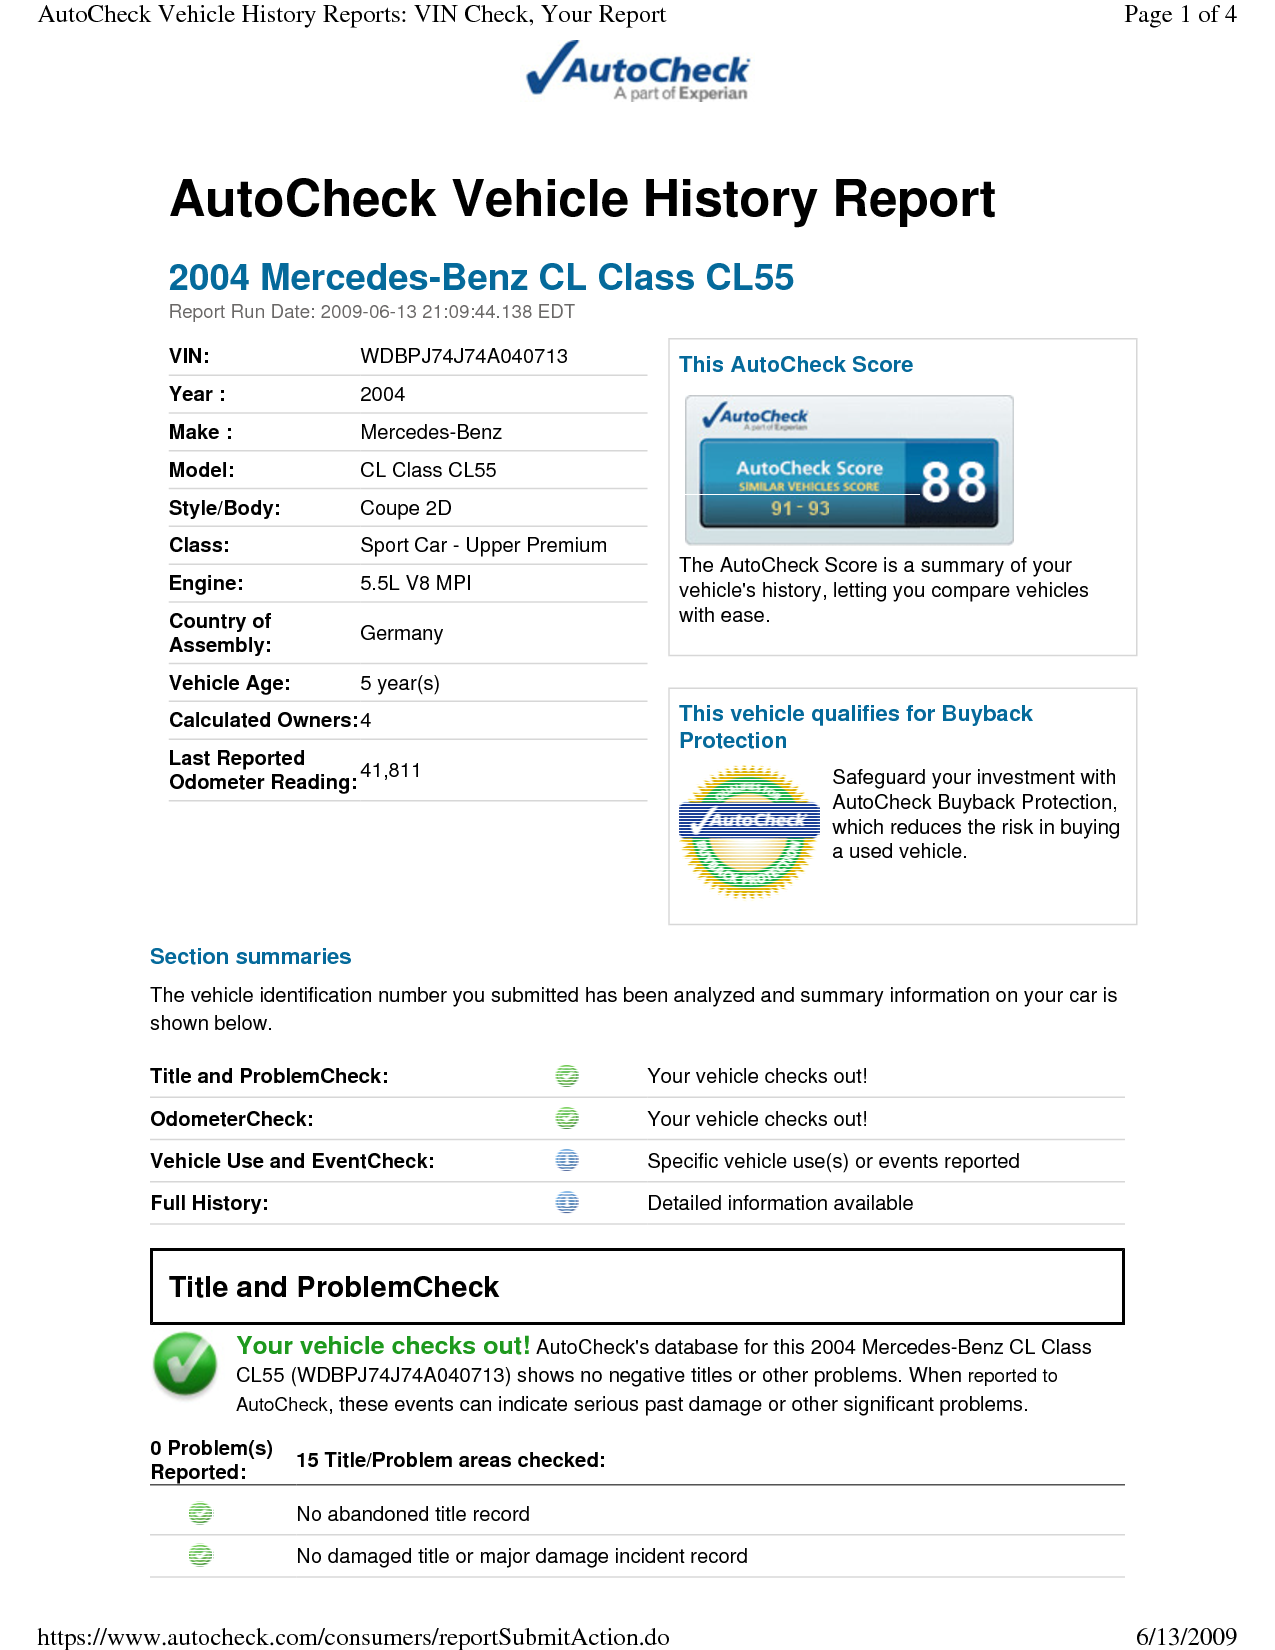 Carfax Vehicle Purchase Service Fresh Carfax Vs Autocheck Reports What You Don T Know